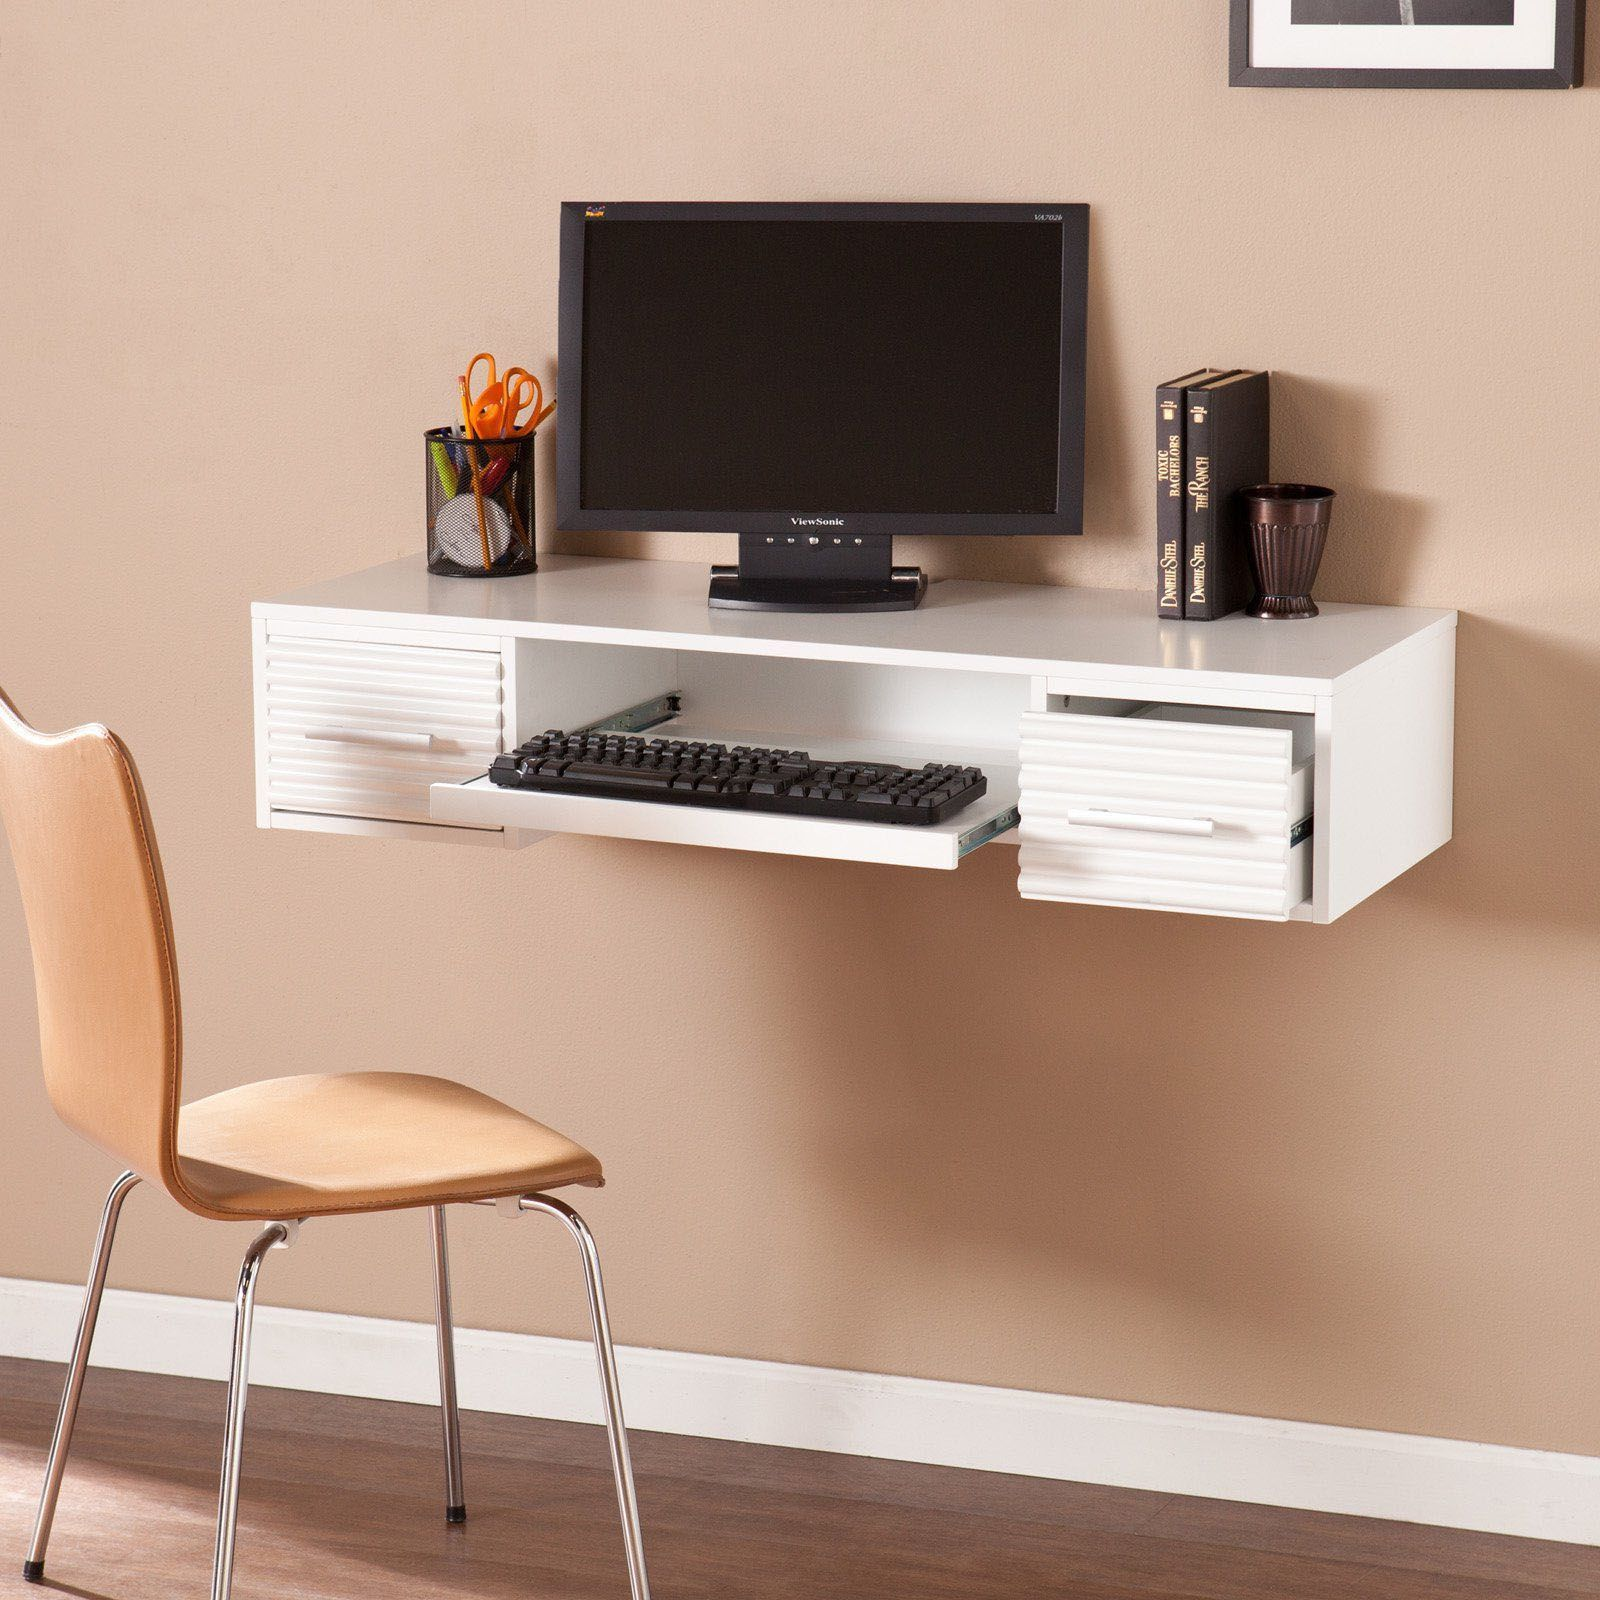 Desk Ideas Perfect For Small Spaces Wall Mounted Desk White Wood Wall Small Computer Desk